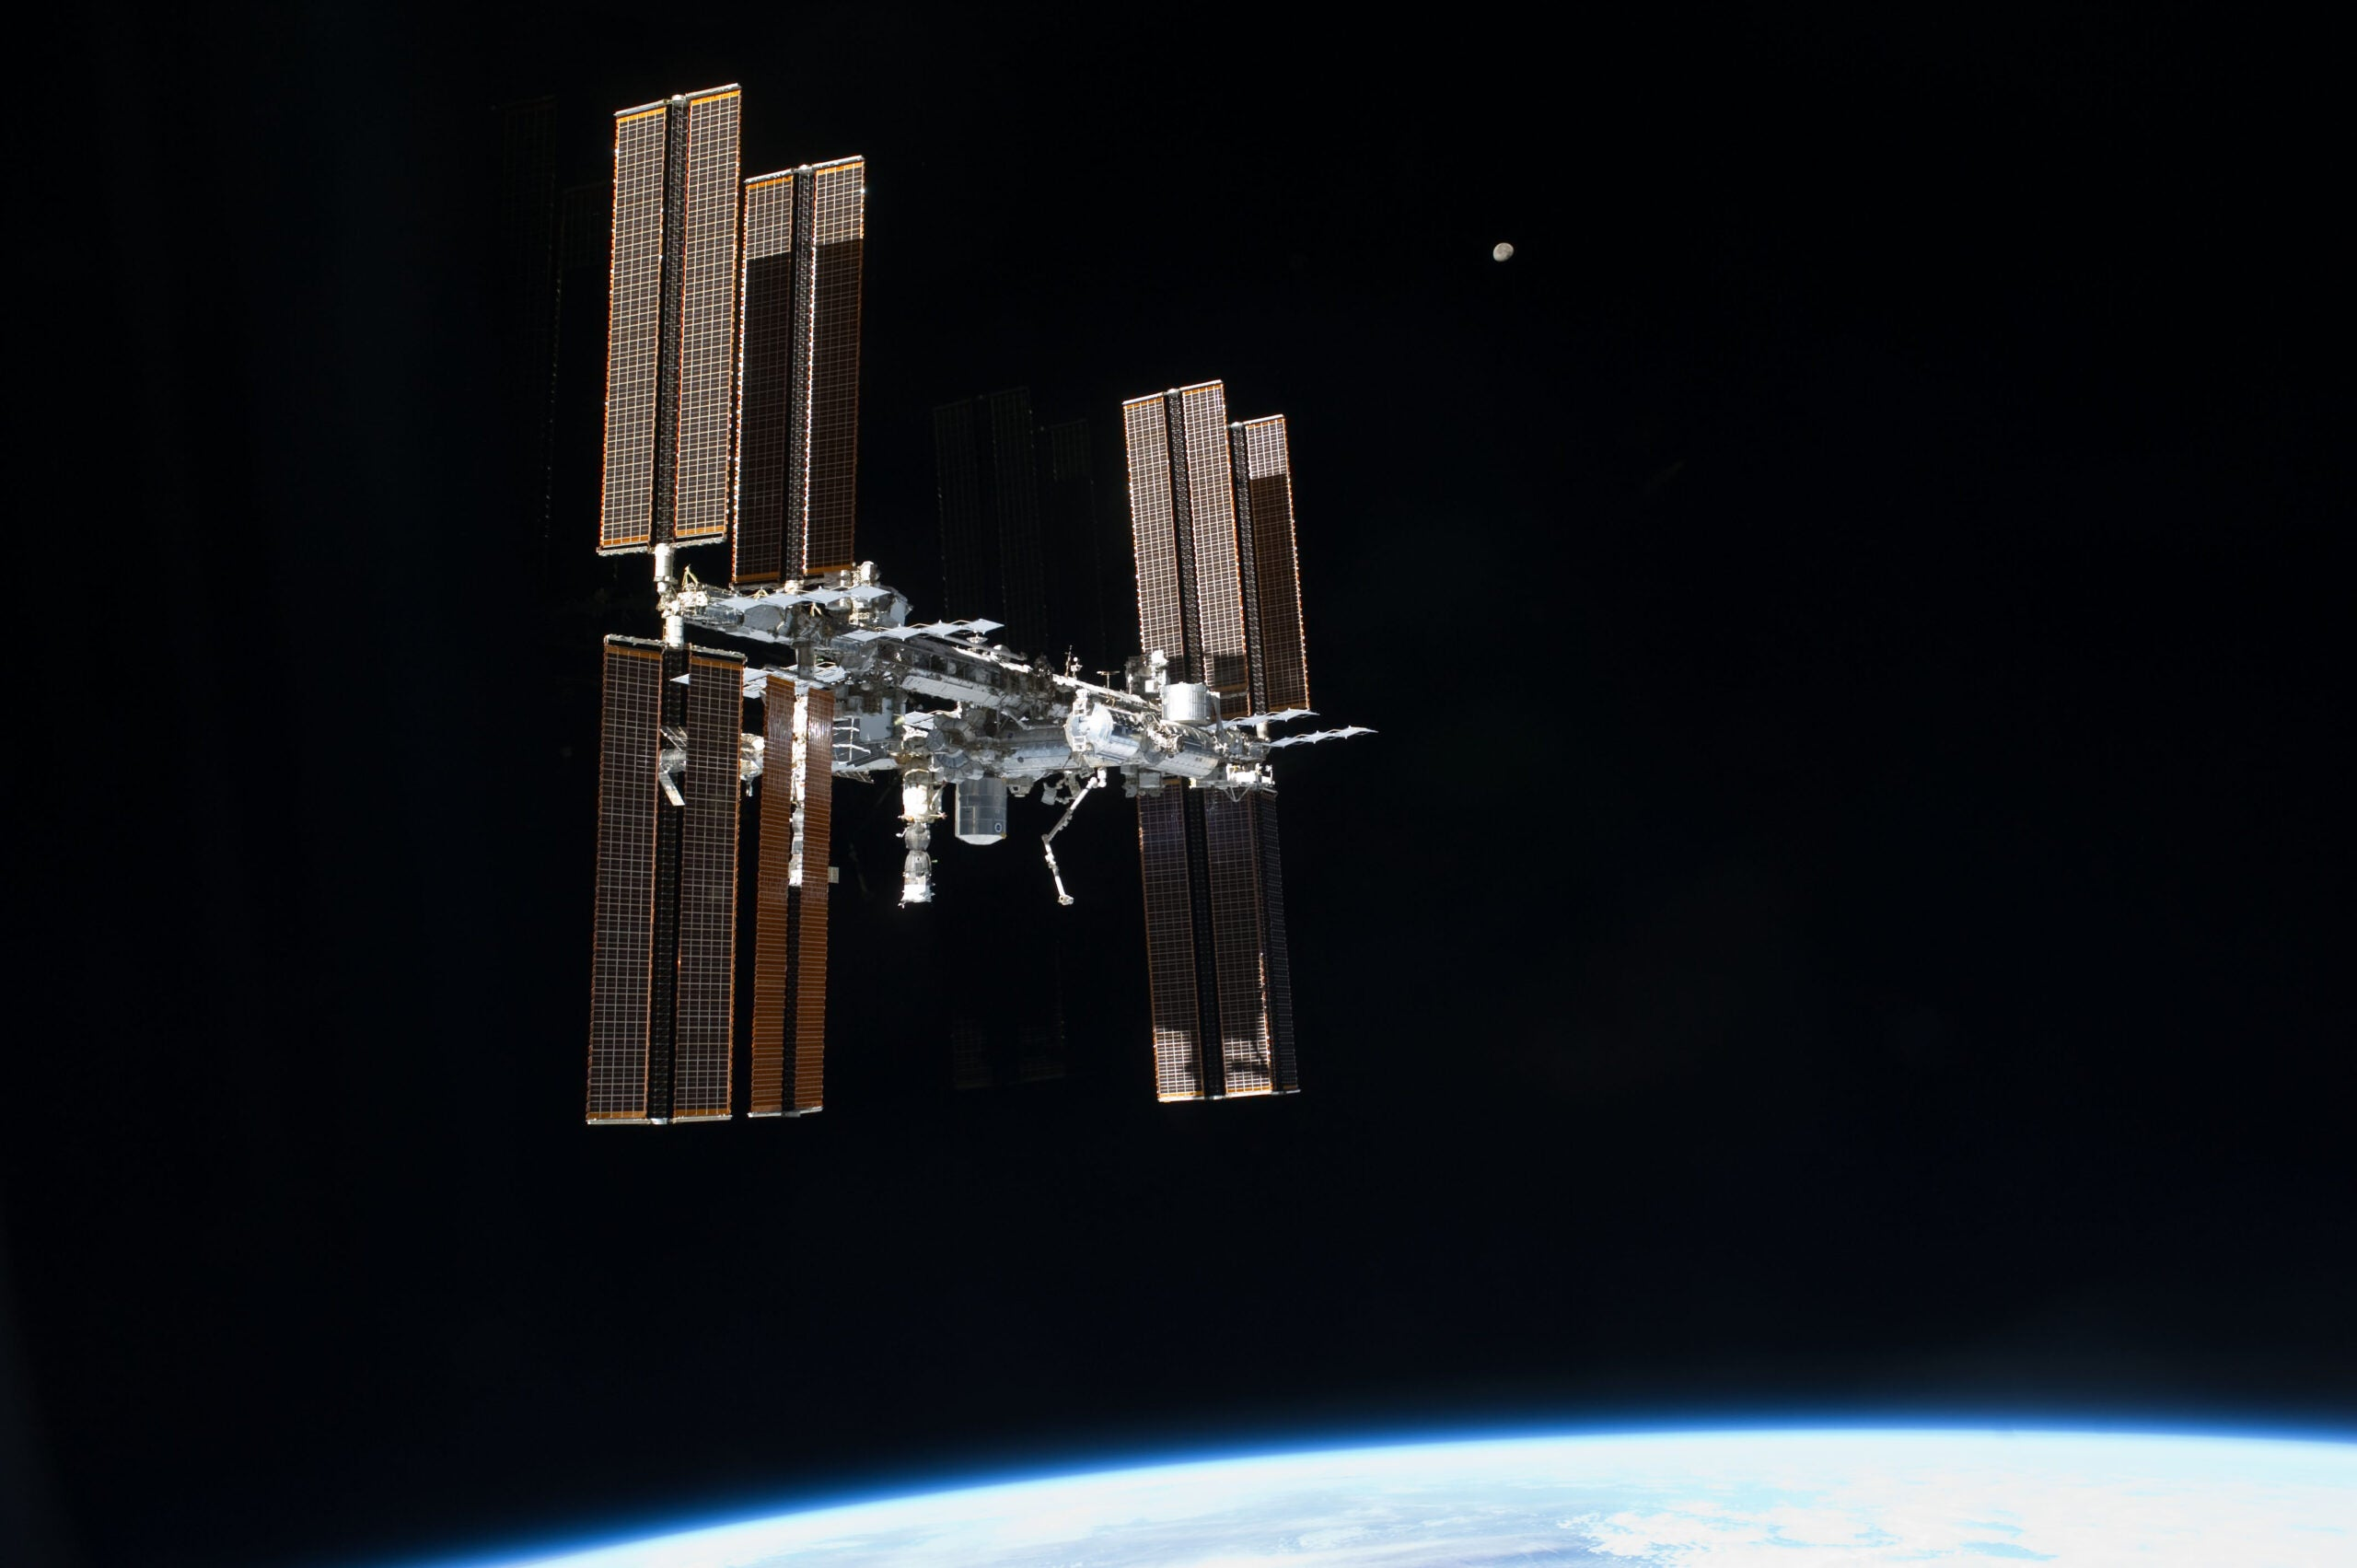 Scientists are trying to figure out which bacteria have colonized our space station